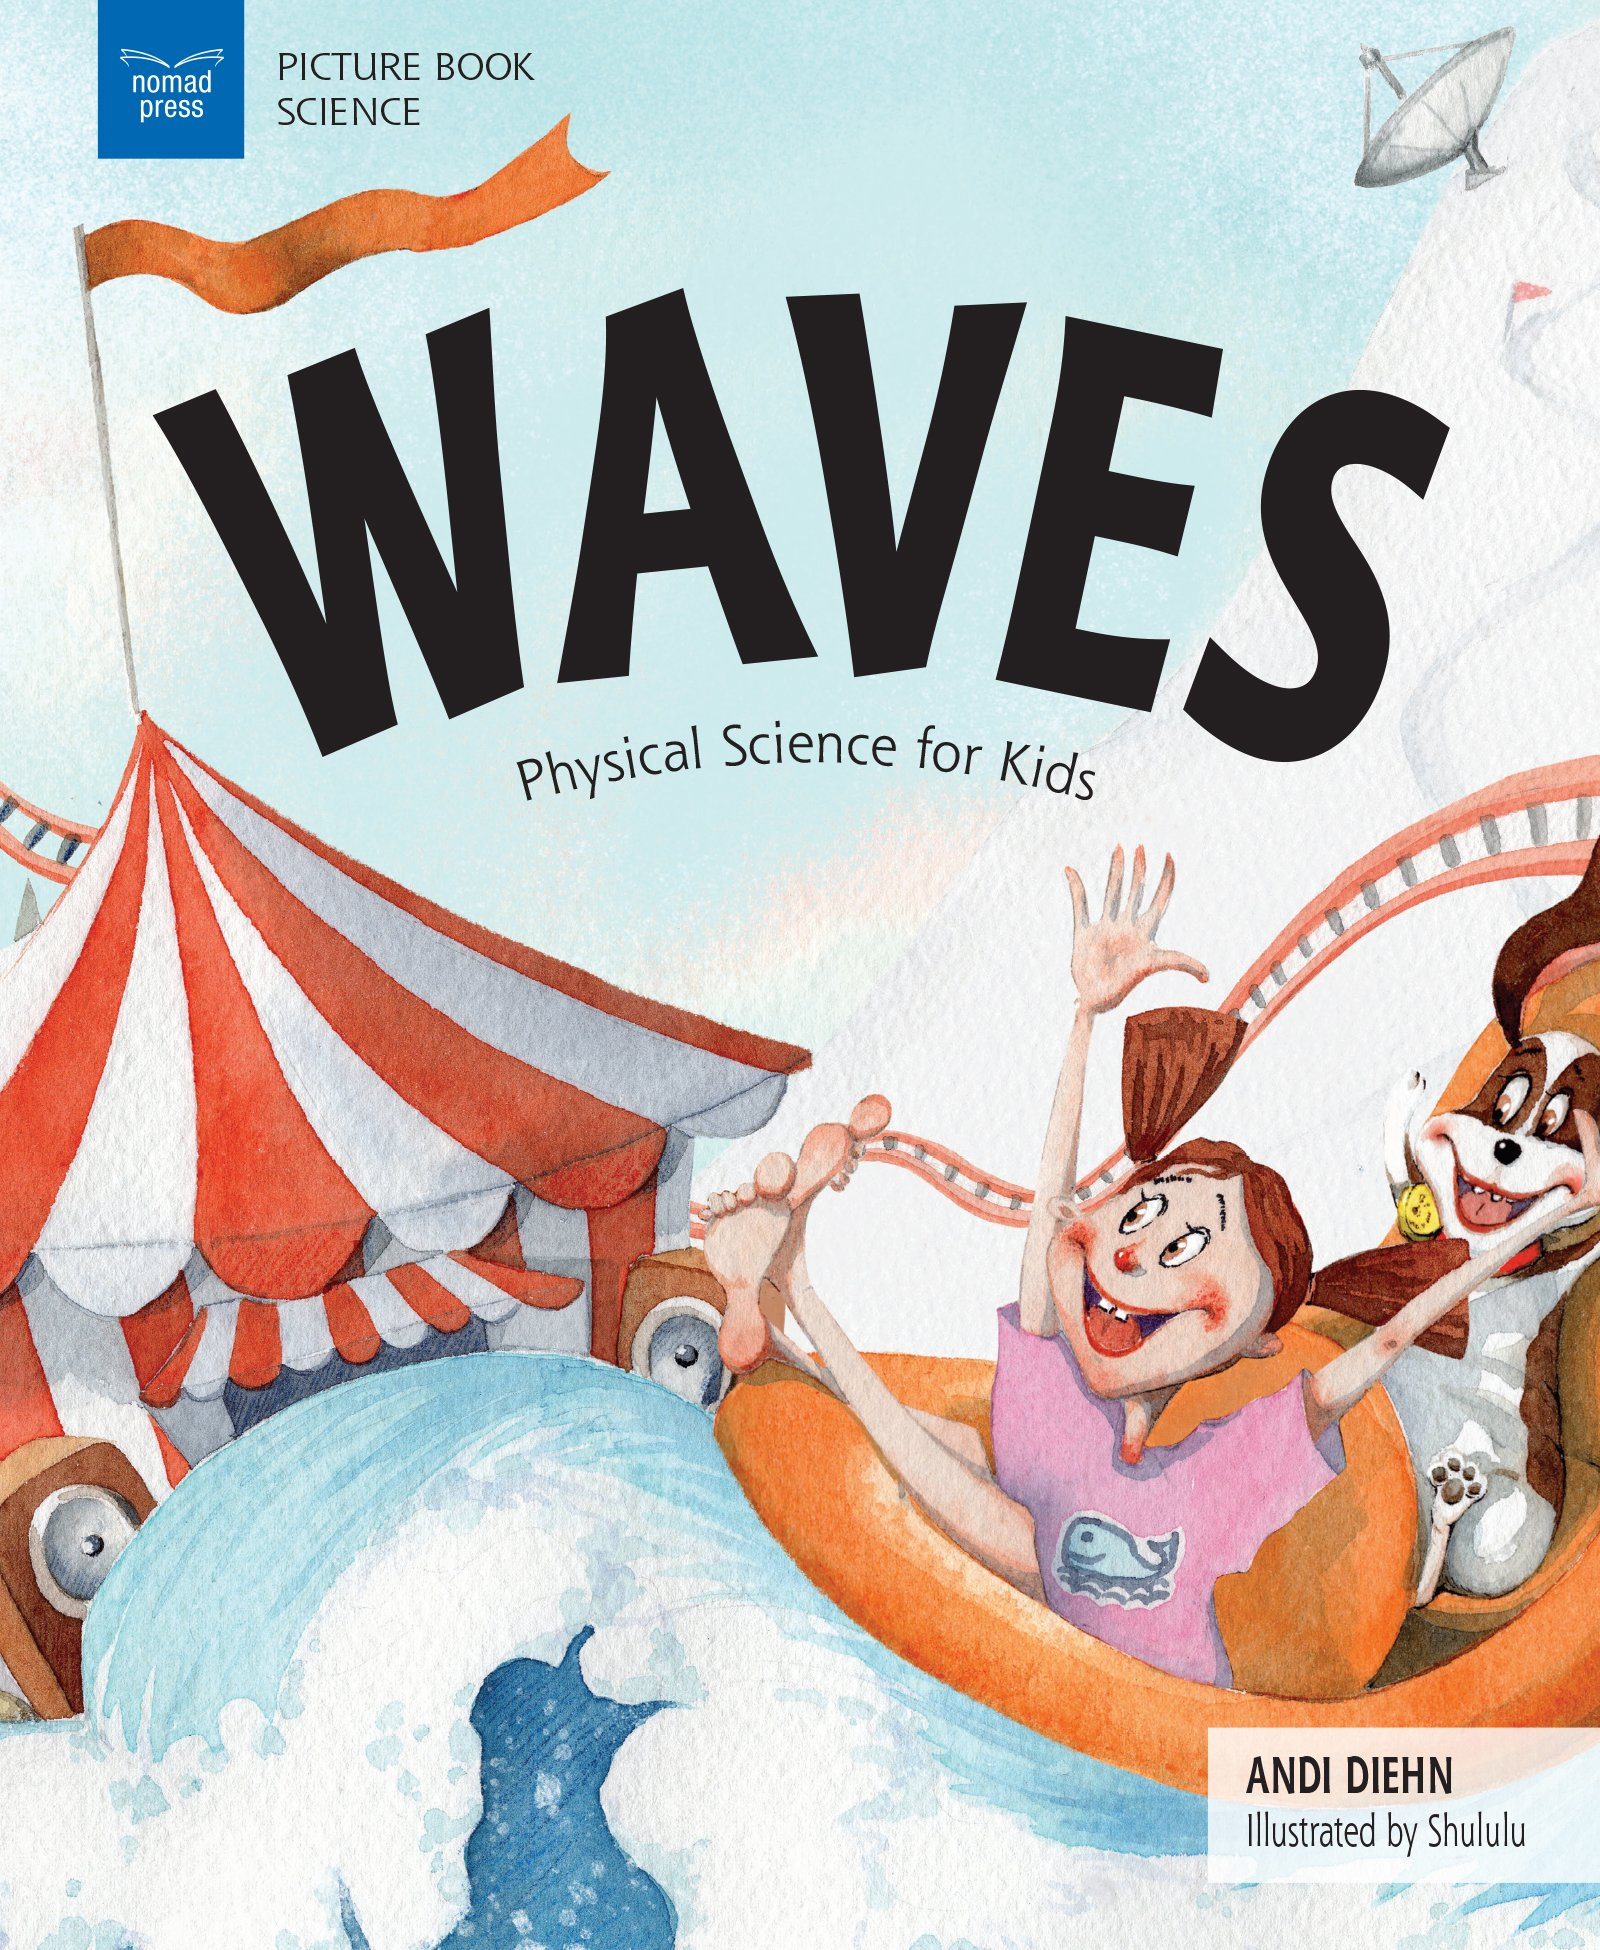 Waves: Physical Science for Kids (Picture Book Science) pdf epub